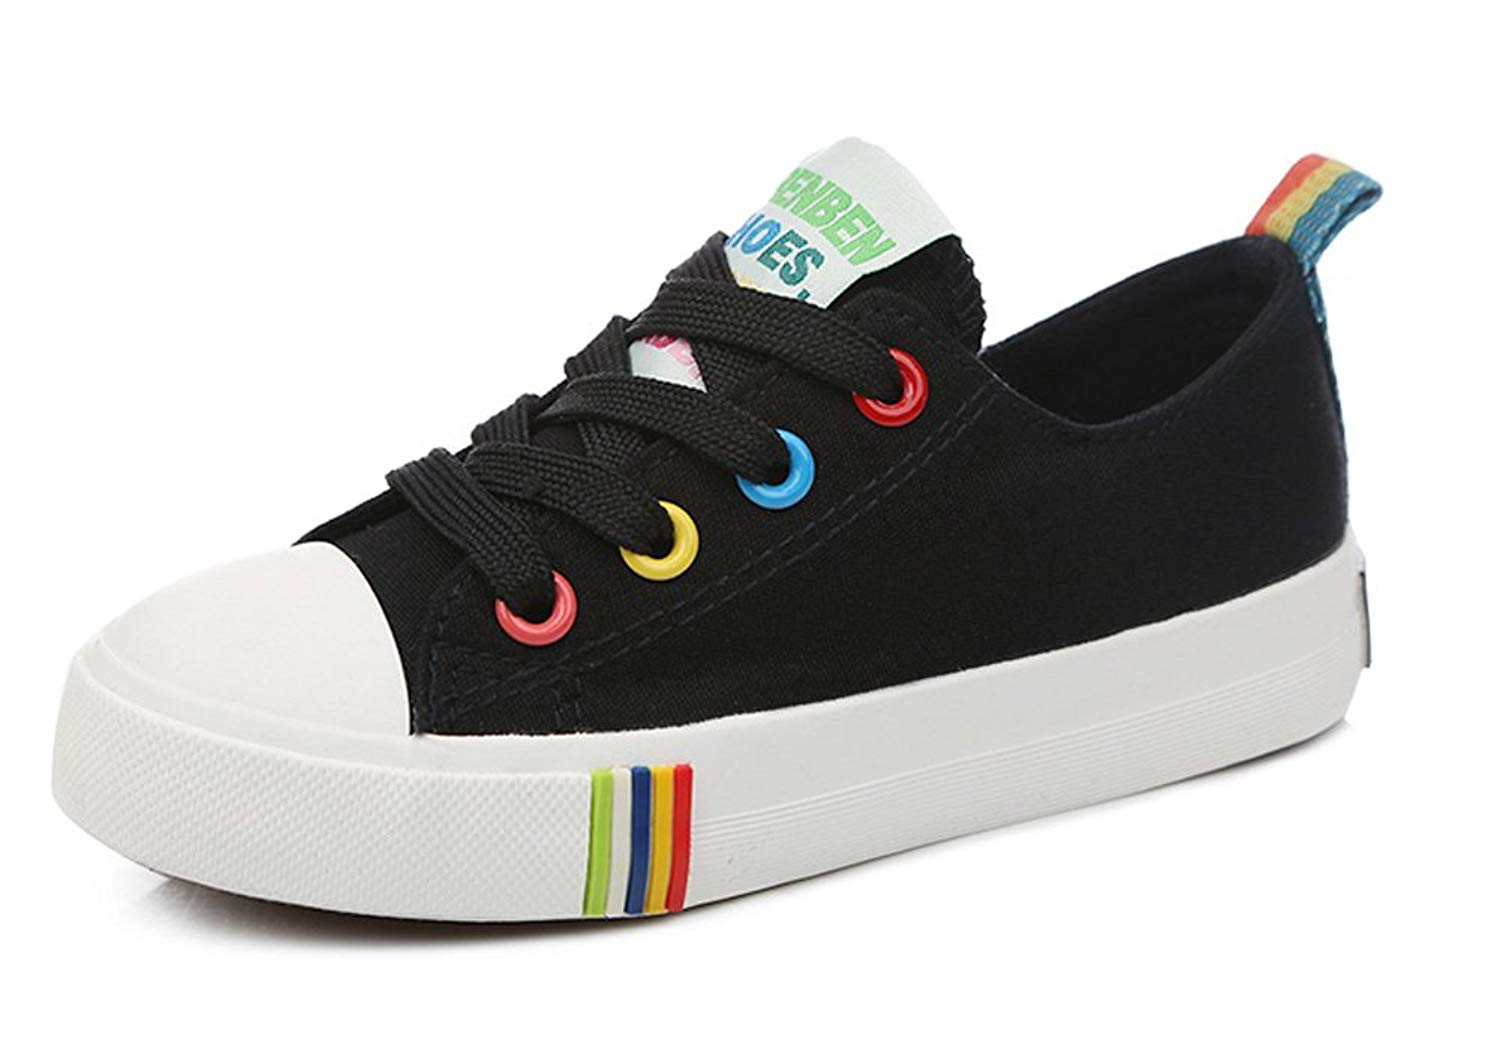 iDuoDuo Kids Rainbow Casual Canvas Shoes Lace-Up Board Shoes Low Top Sneakers (Toddler/Little Kid/Big Kid)